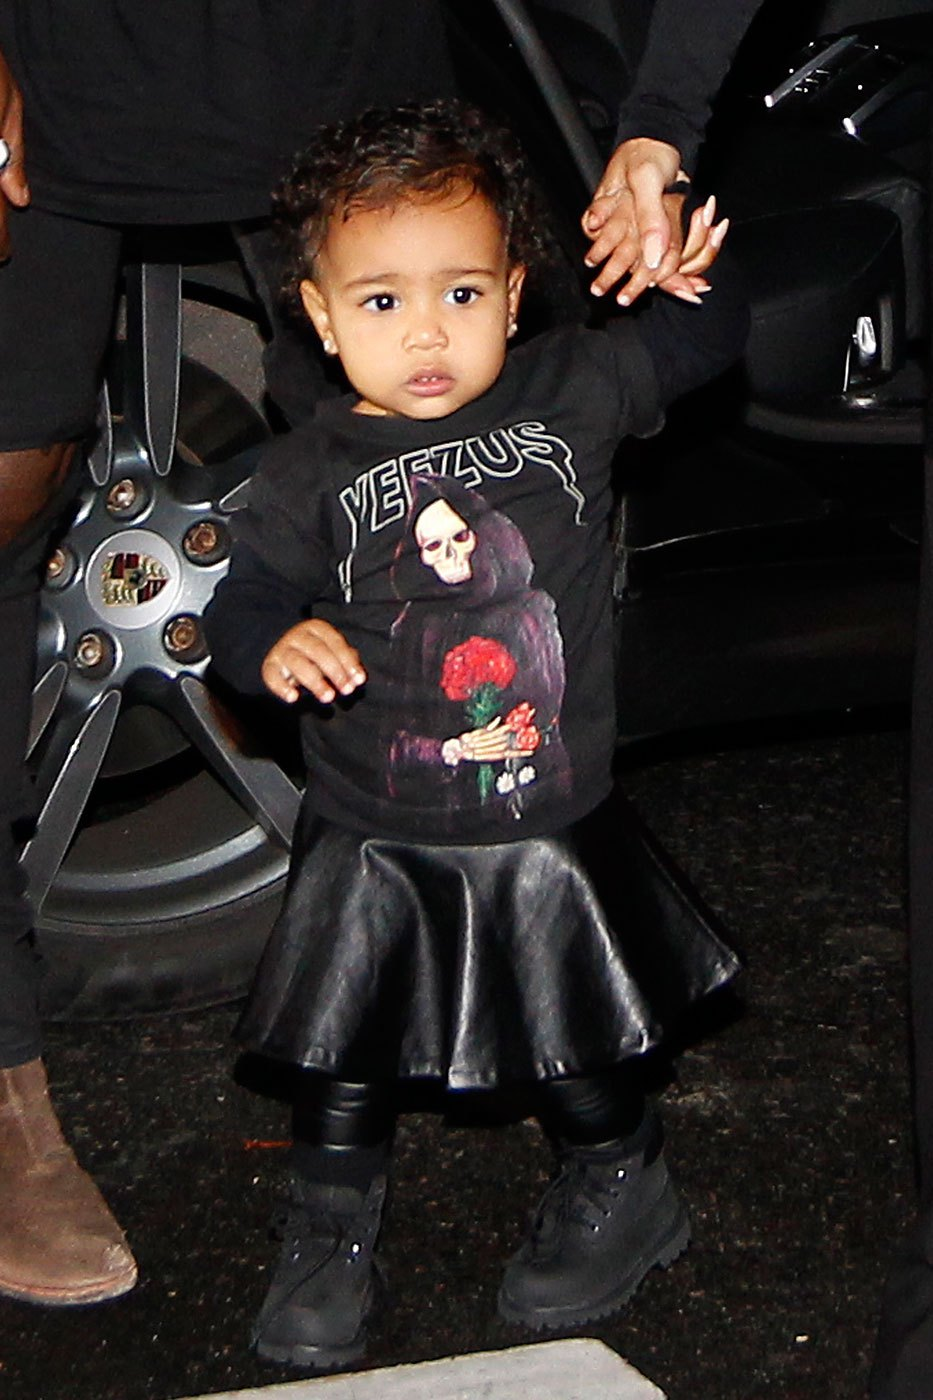 24 Sep 2014, Paris, France --- Kanye West, Kim Kardashian and their daughter North West walk to the Balenciaga Womenswear Spring/Summer 2015 during Paris Fashion Week in Paris, France. Pictured: North West --- Image by © Splash News/Splash News/Corbis